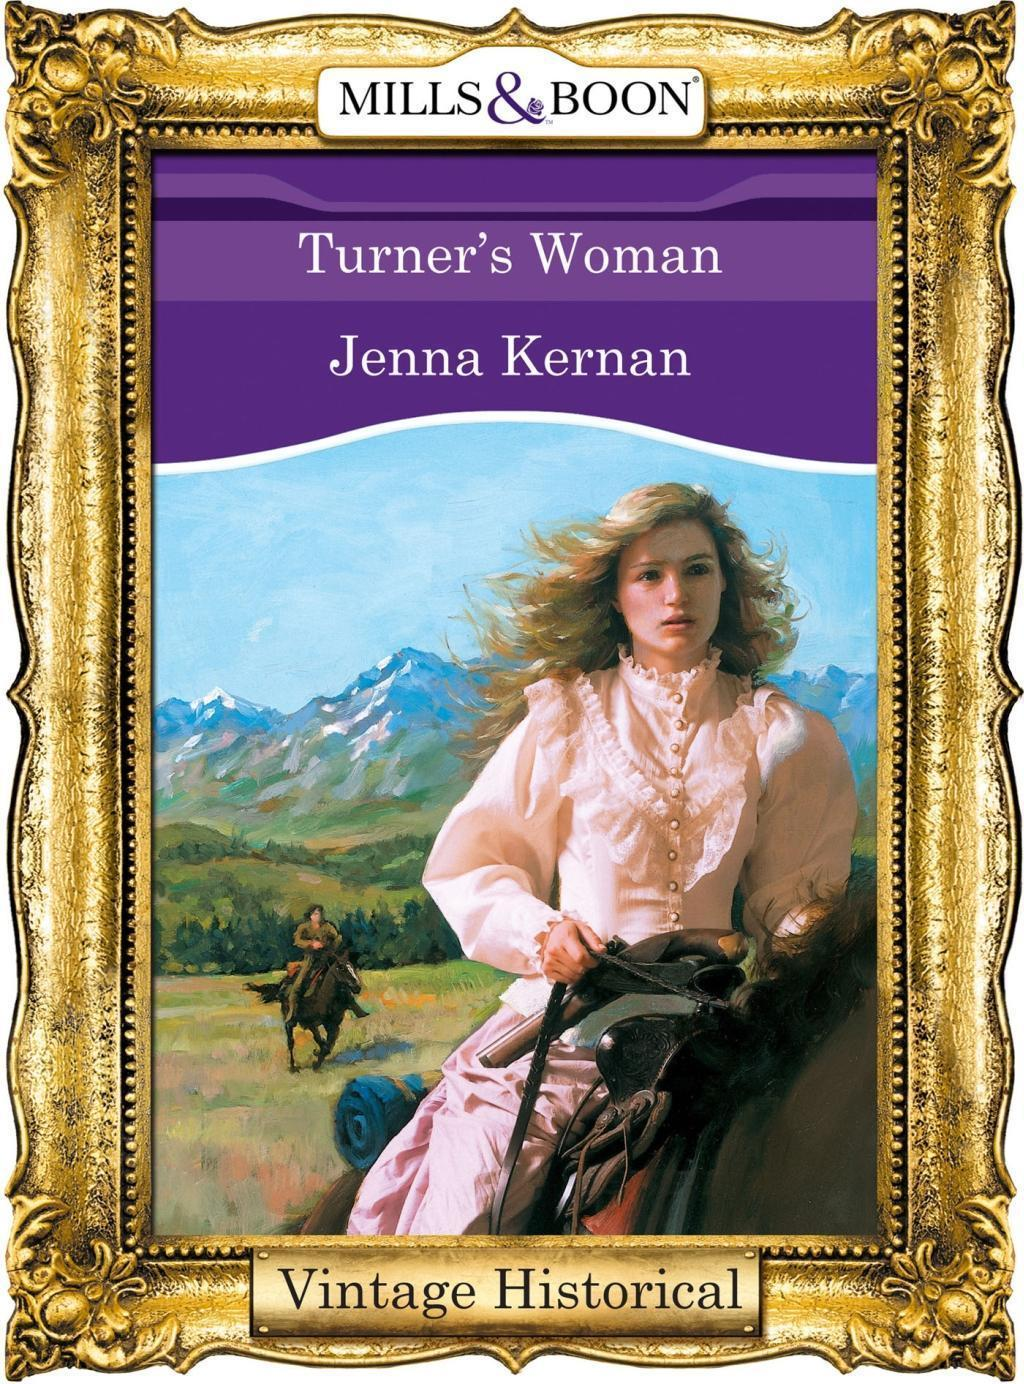 Turner's Woman (Mills & Boon Historical)